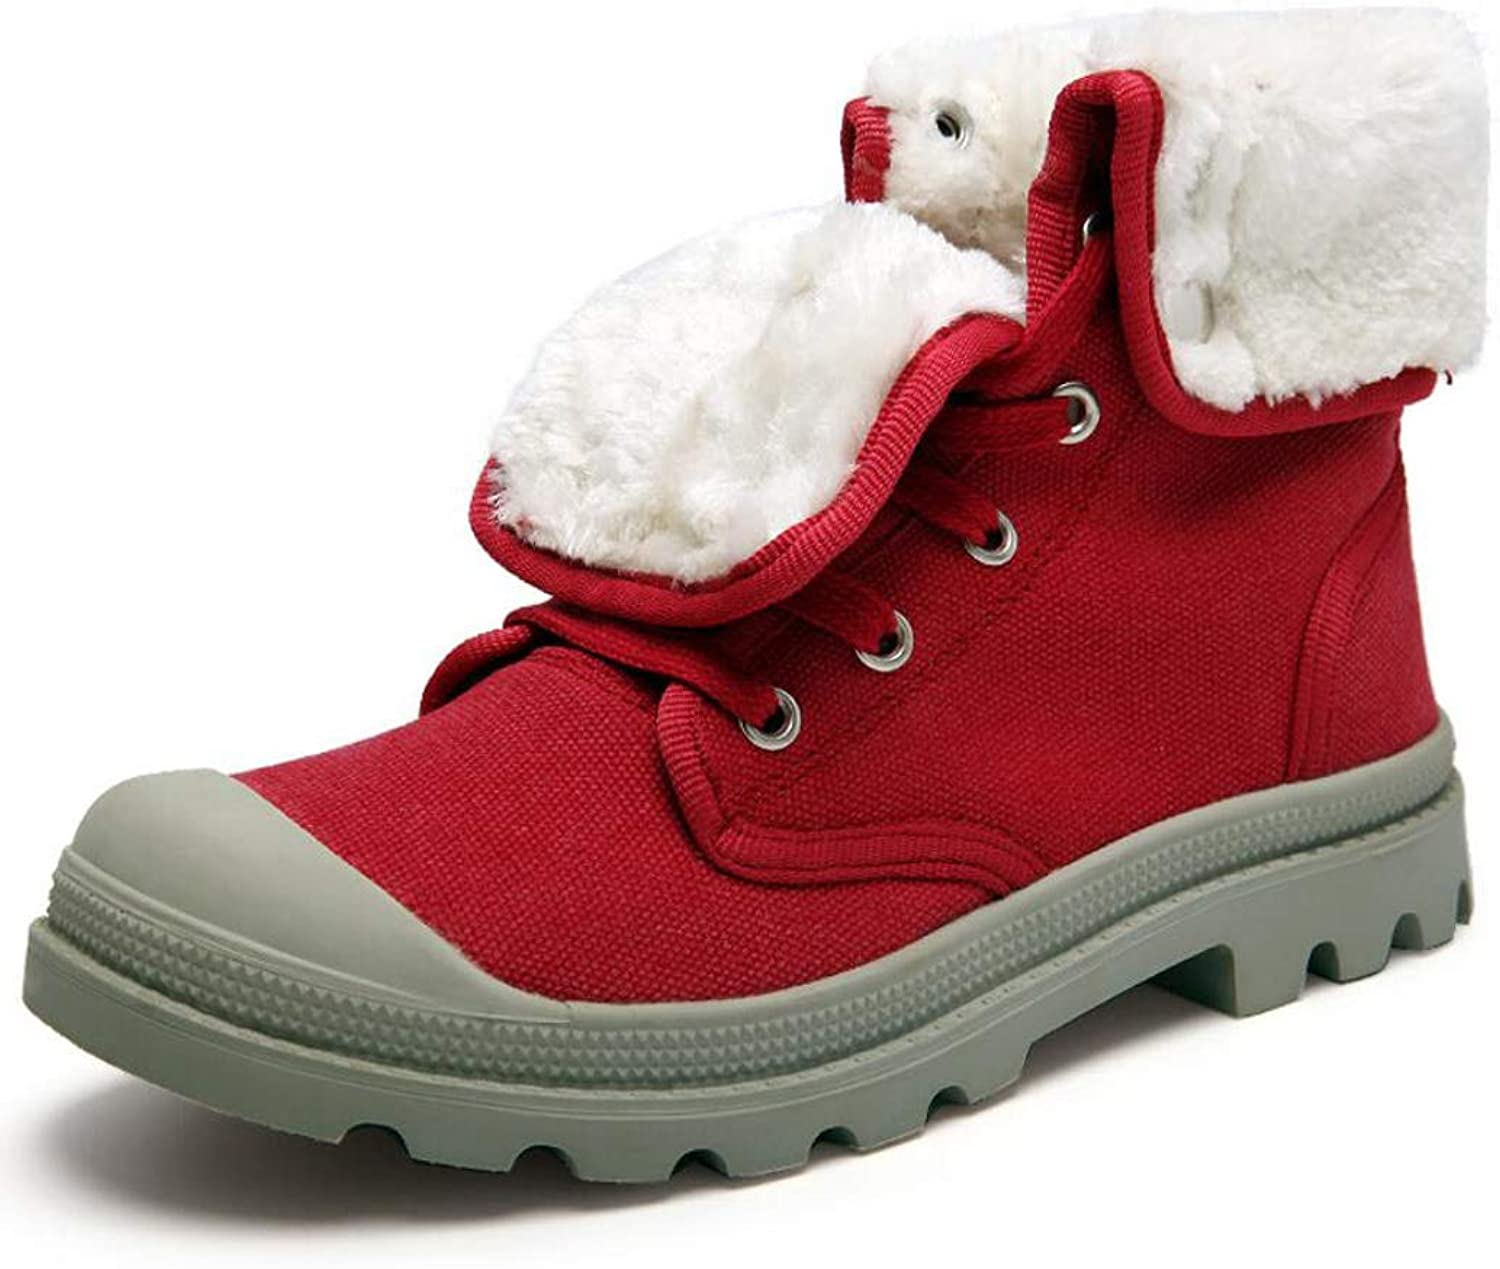 Women's Snow Boots - Waterproof, Textile Upper, Durable & Breathable Isotherm Lining & Rubber Outsole - Designed for fit and Comfort Large Size